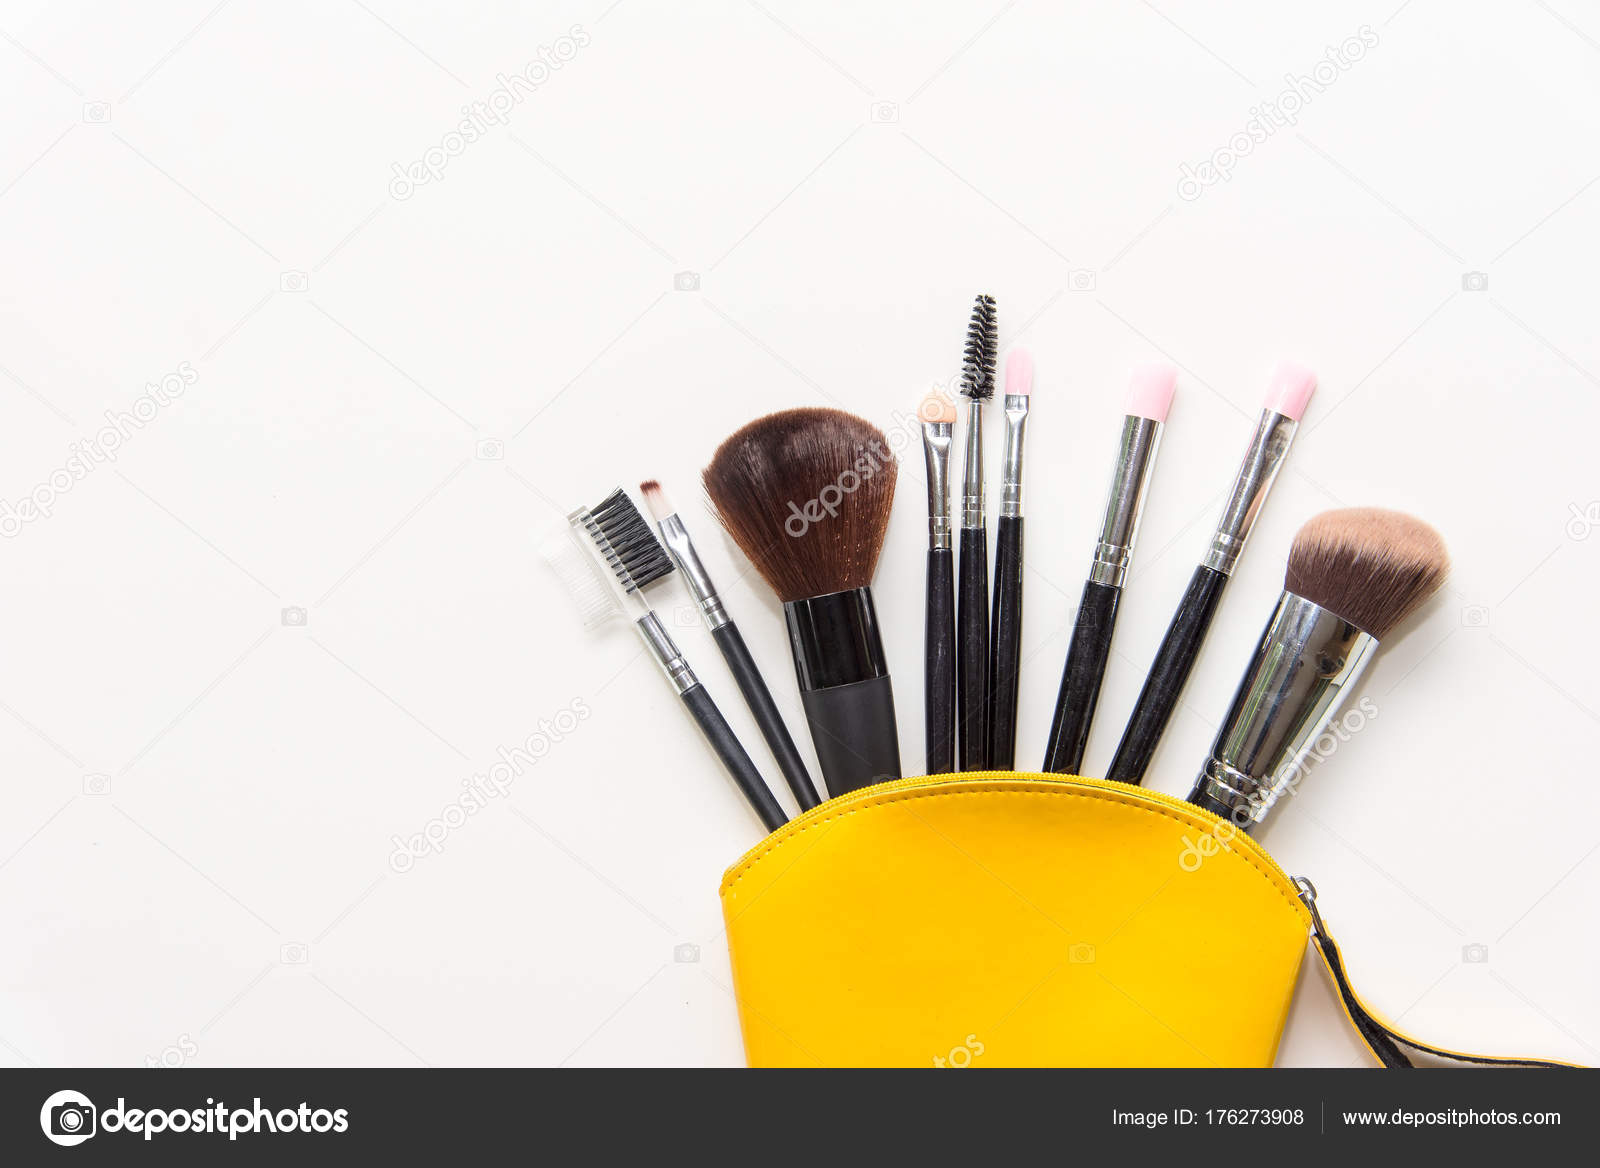 Makeup cosmetics tools background and beauty cosmetics, products and facial cosmetics package lipstick, eyeshadow in yellow bag on the white background.